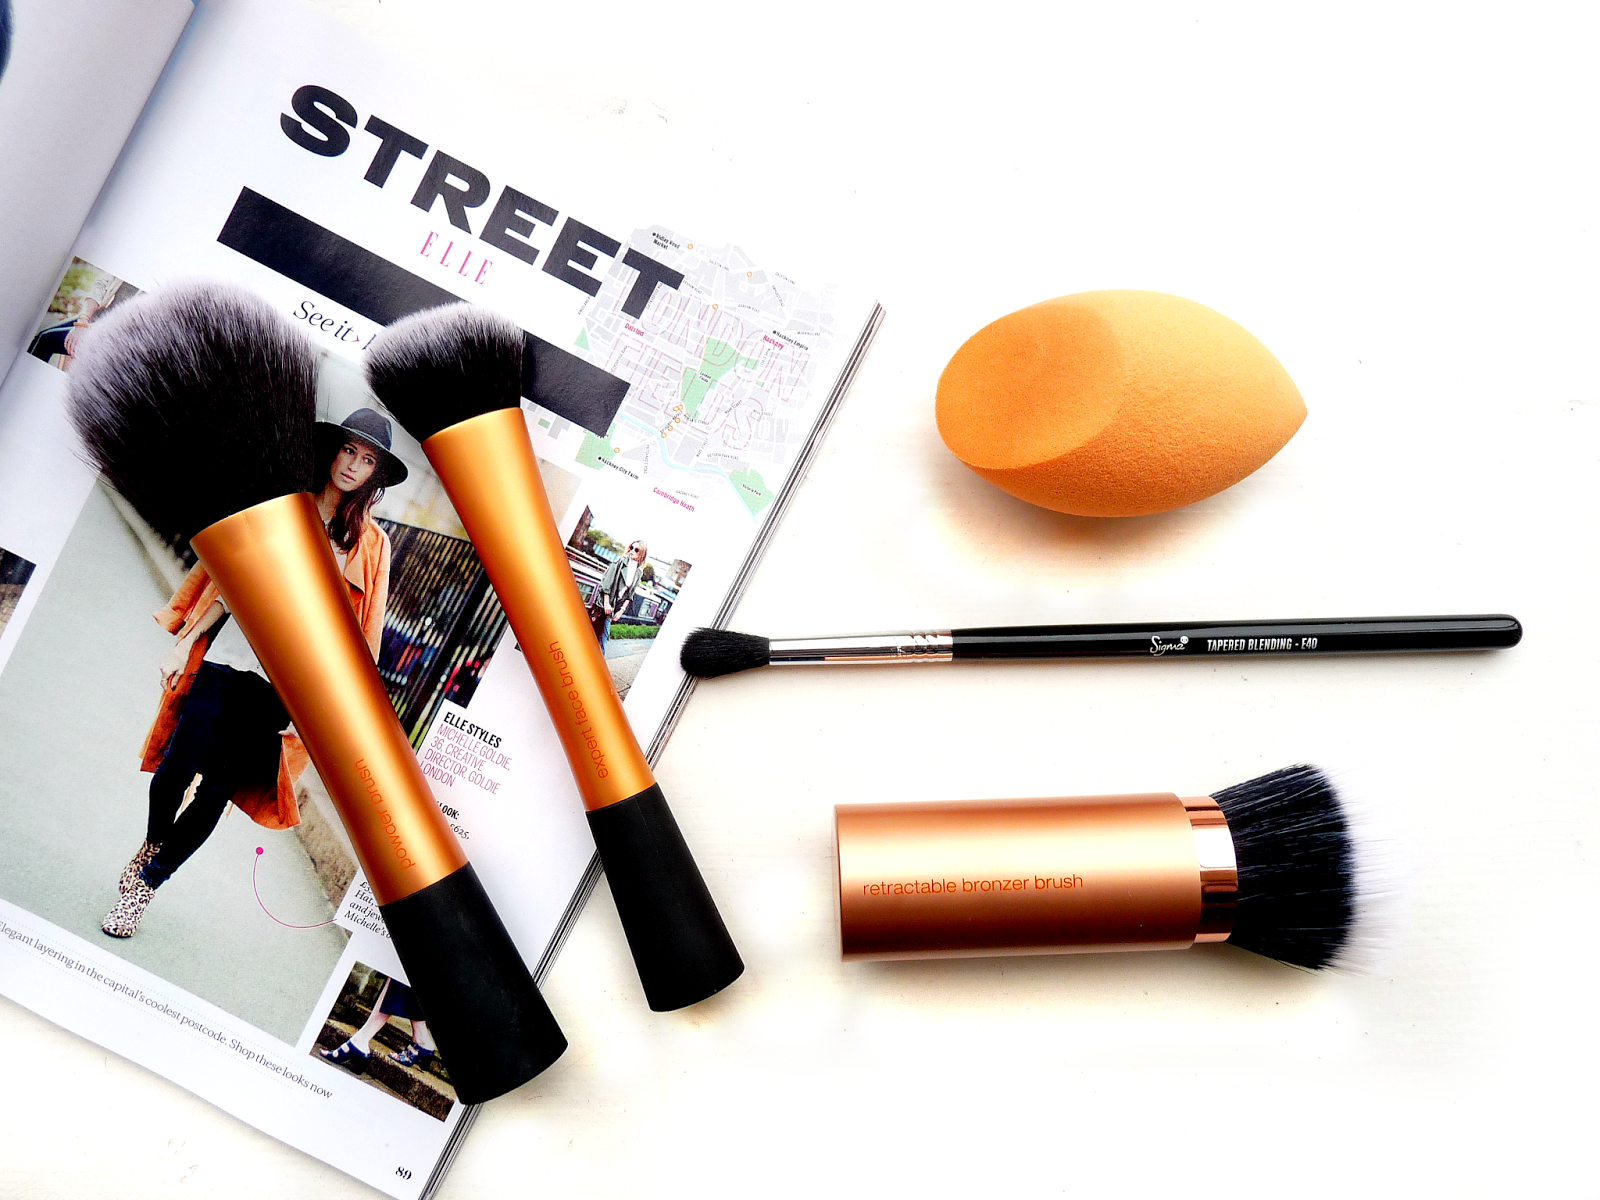 real techniques sigma beauty makeup brush review powder brush face brush bronzer tapered eye brush